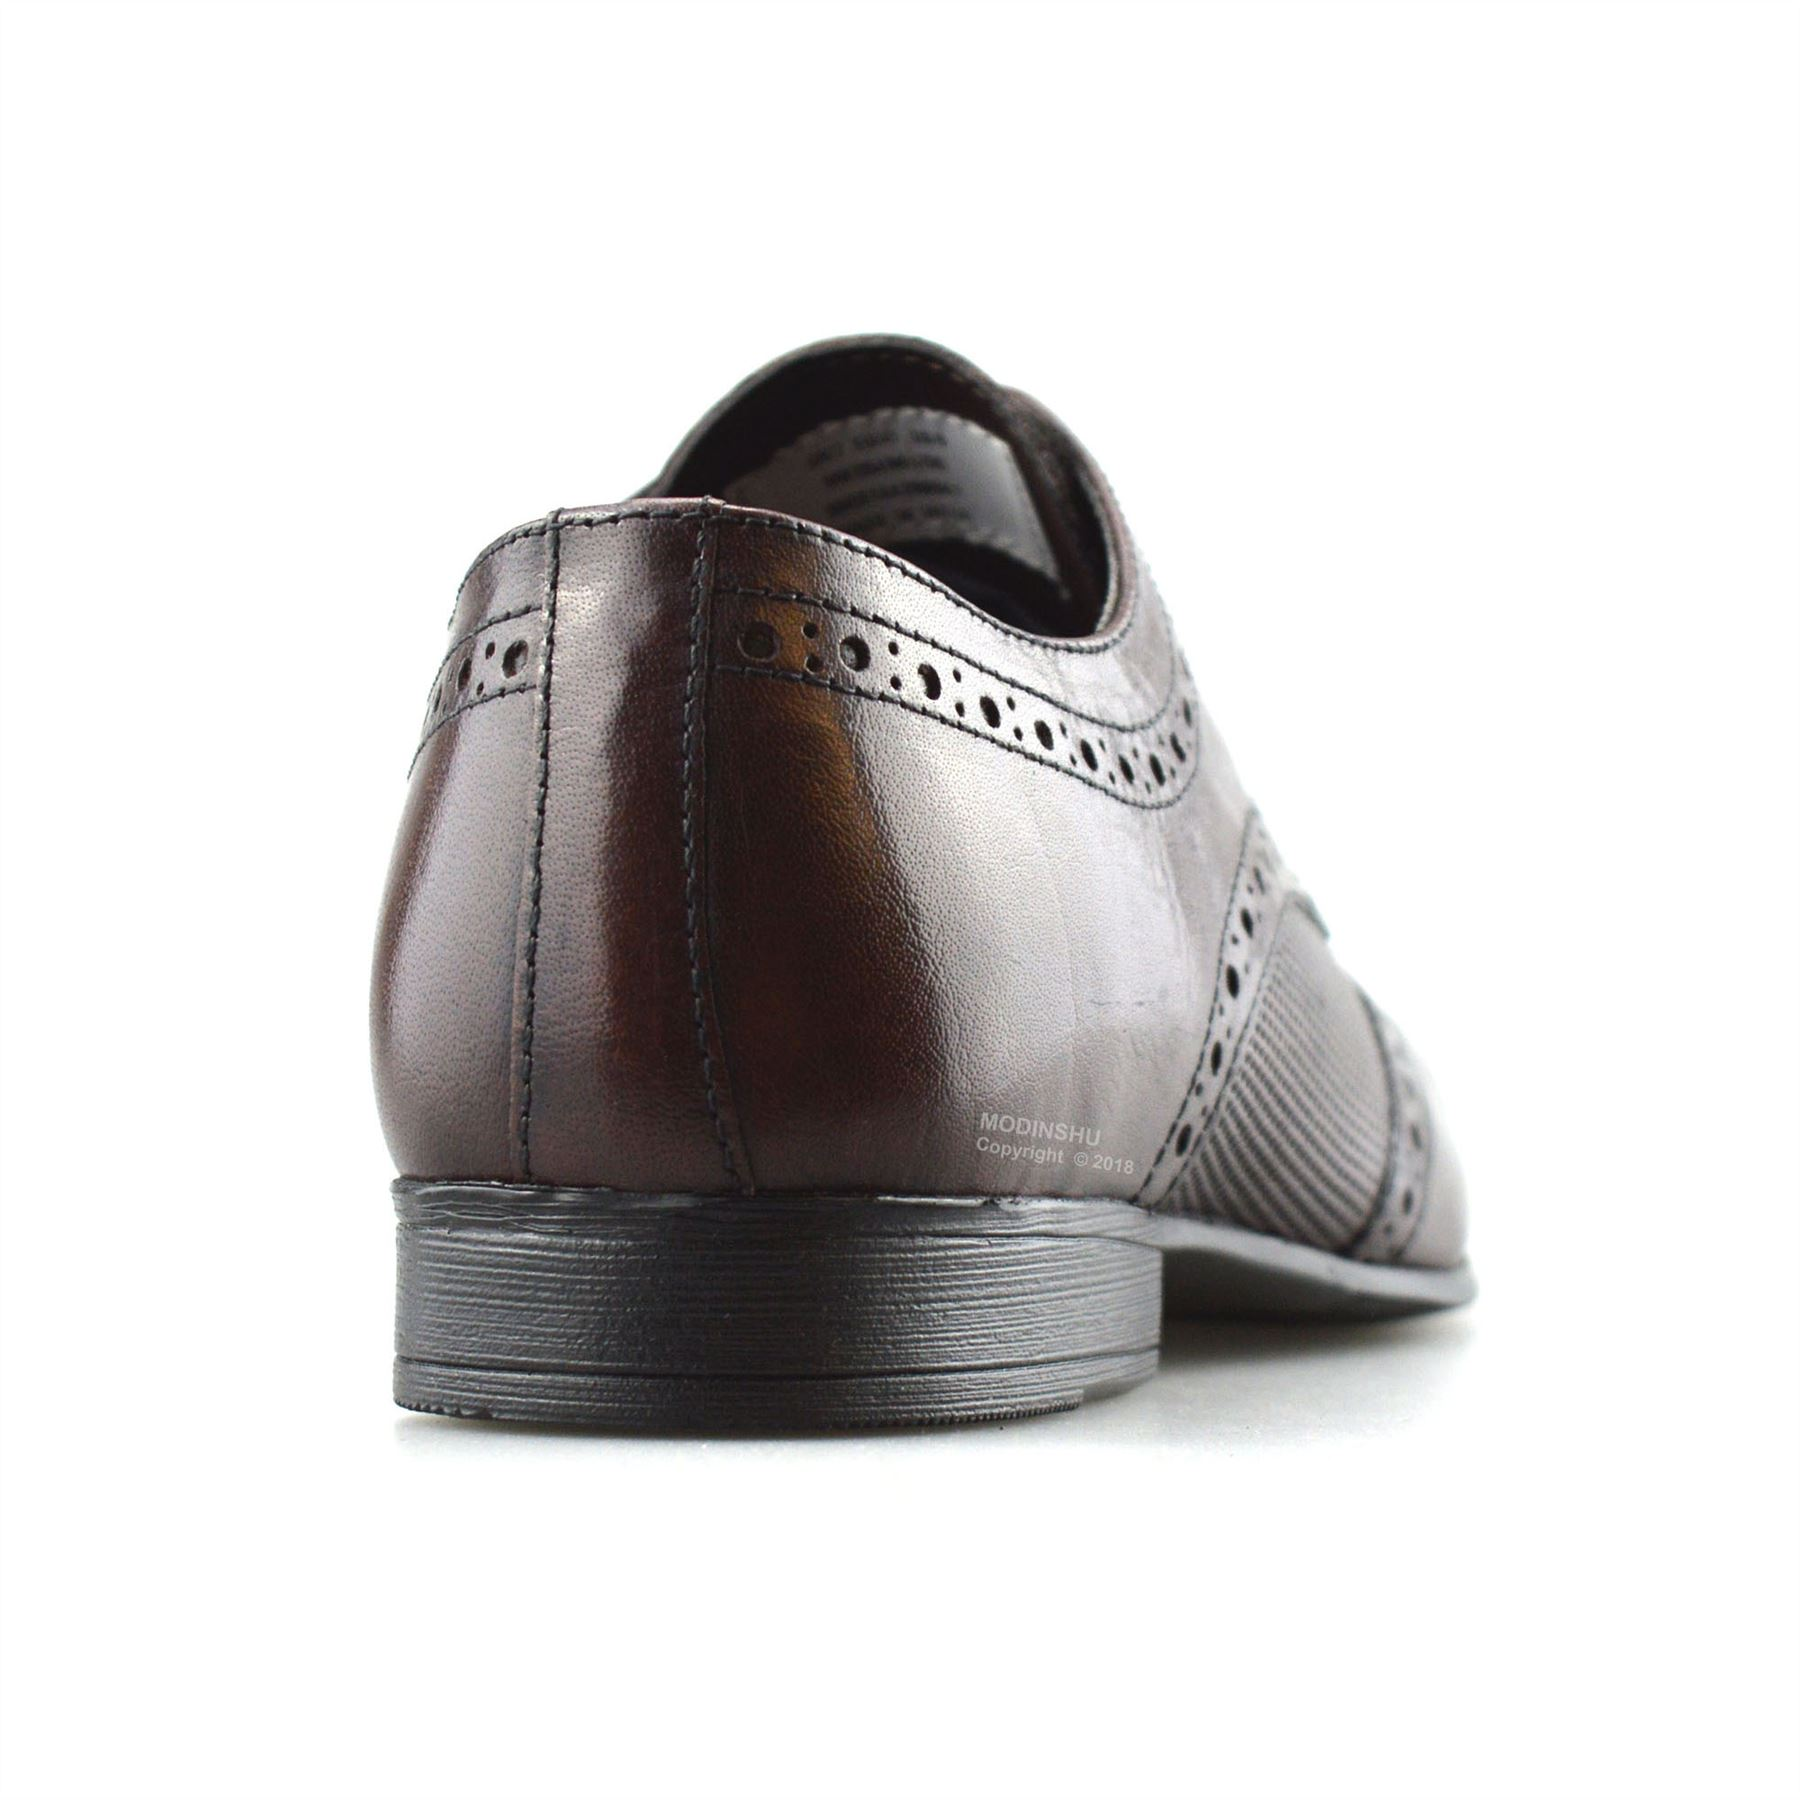 Mens-Leather-Lace-Up-Brogues-Smart-Formal-Office-Casual-Oxford-Brogue-Shoes-Size thumbnail 11